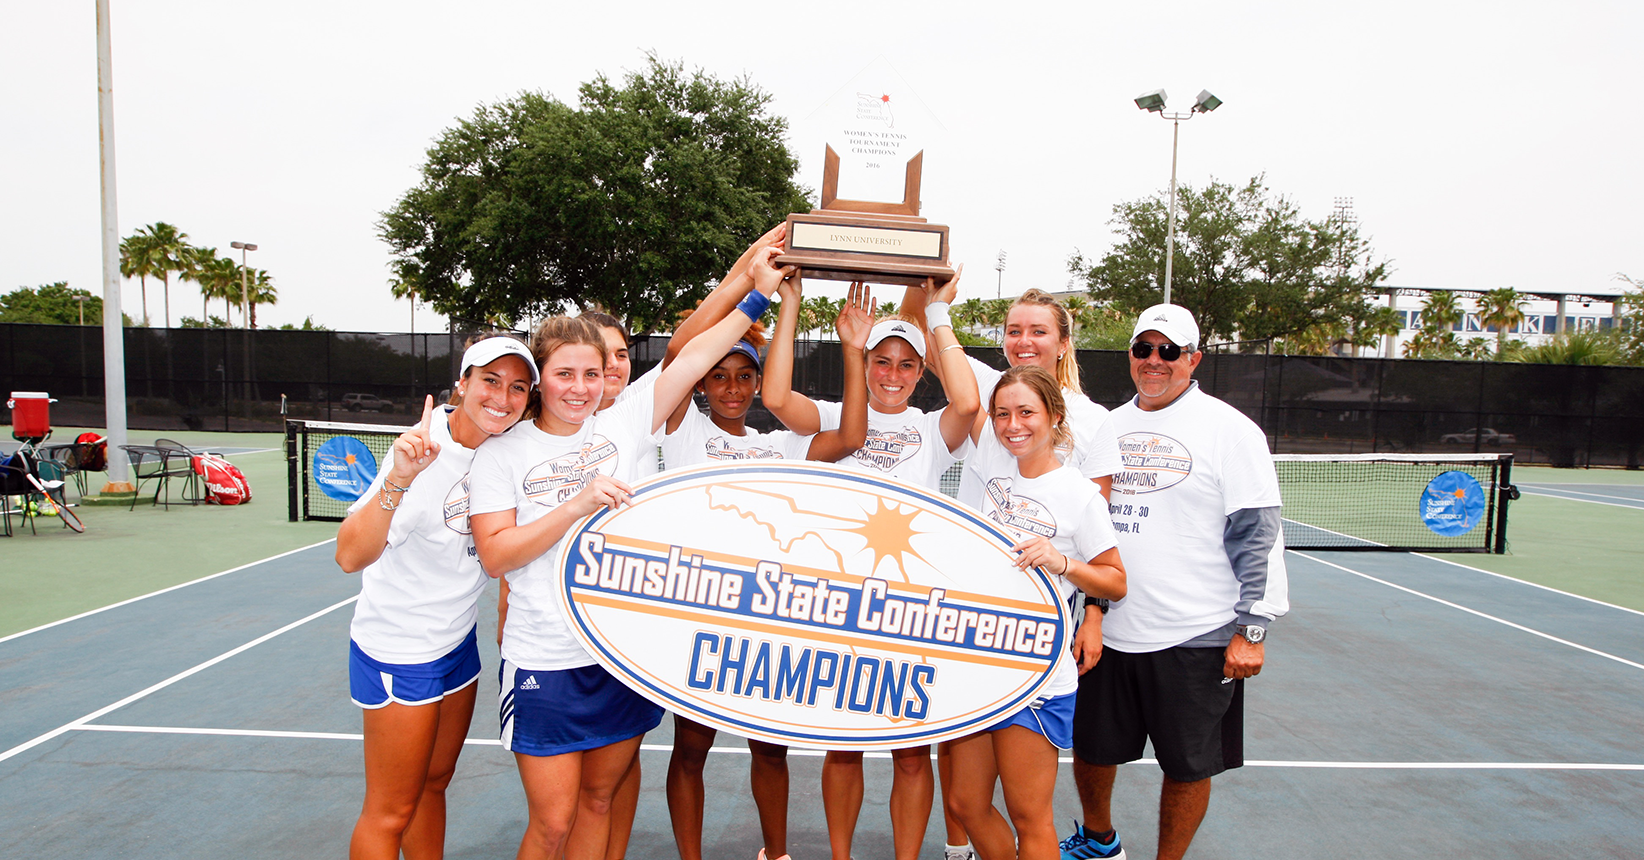 Champs Once Again! Women's Tennis Ends Barry's SSC Reign